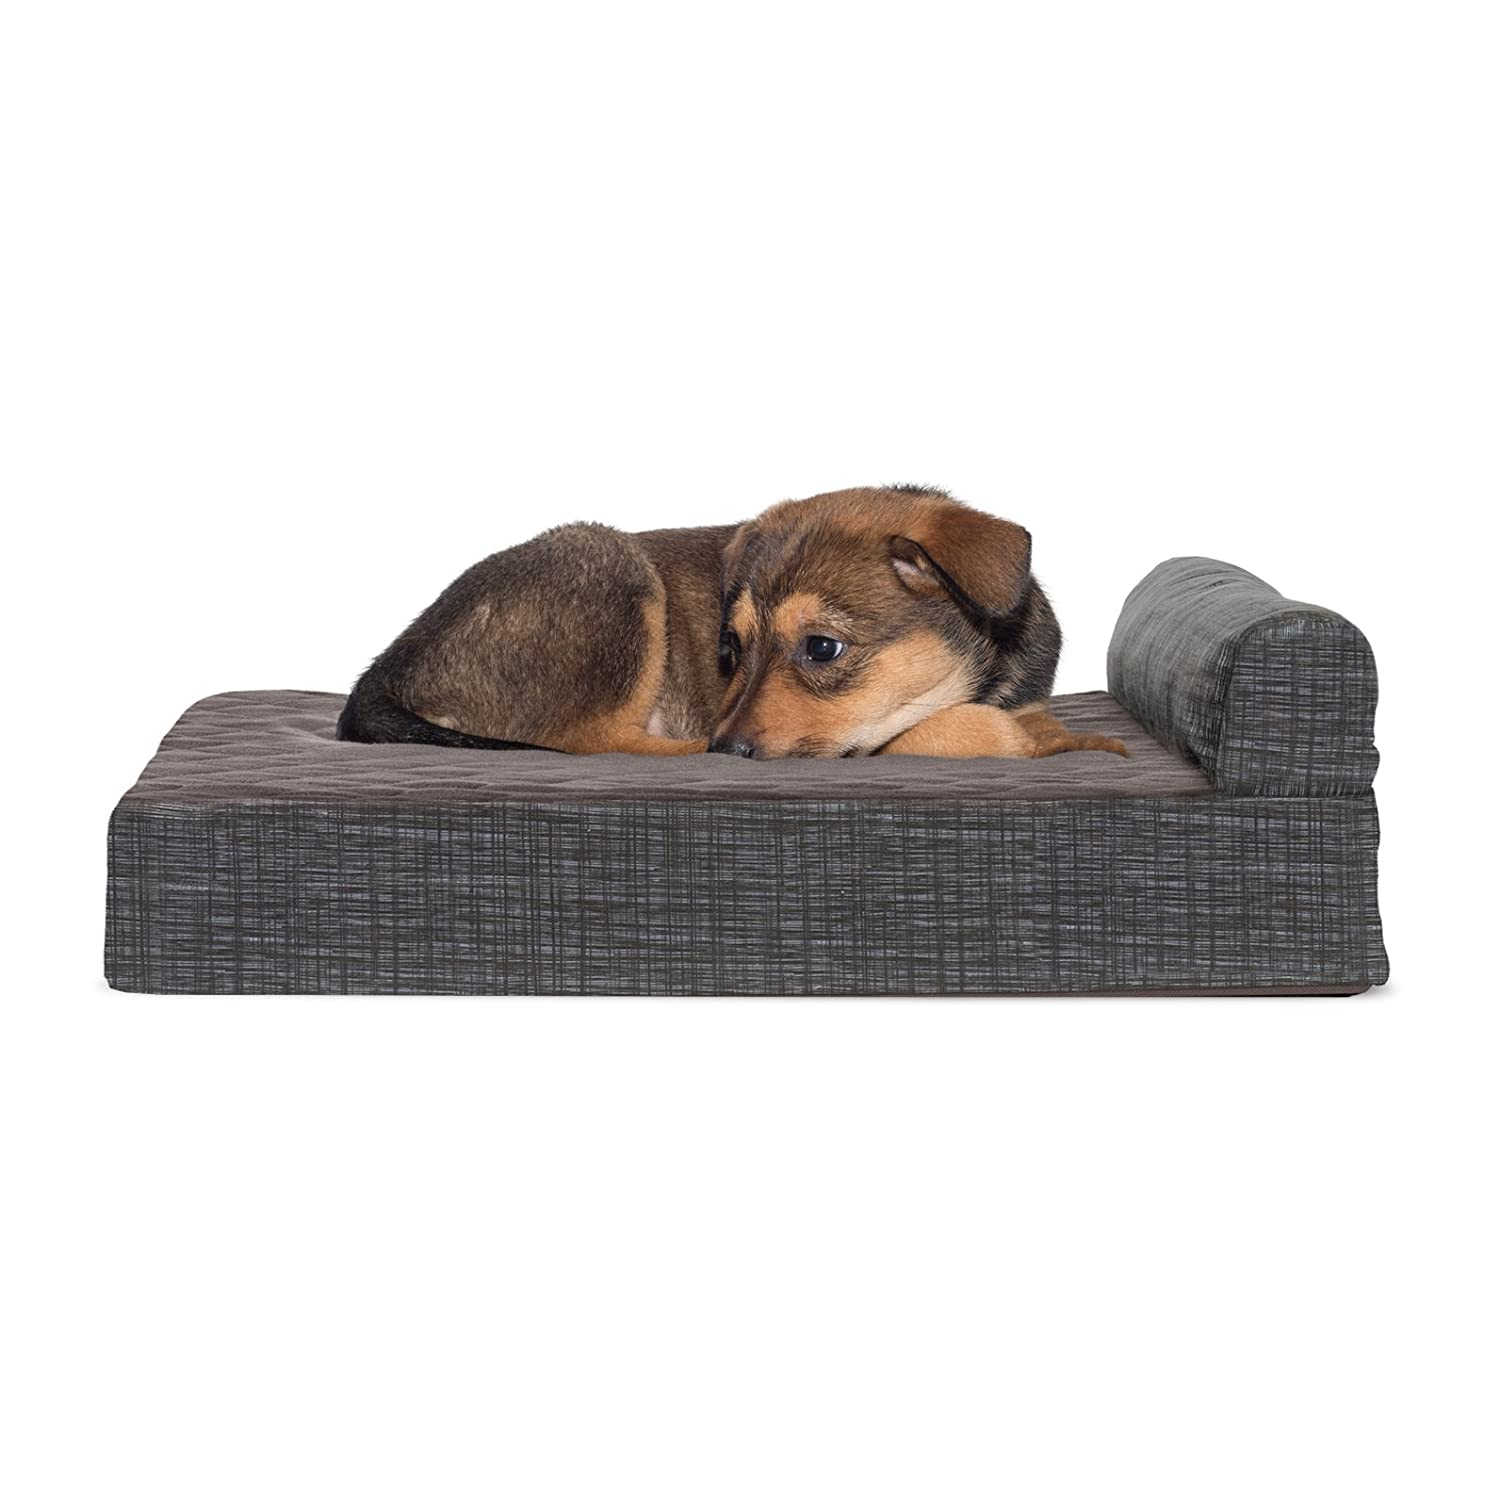 One Sided Fleece  Espresso SmallFurHaven Deluxe Orthopedic Chaise Couch Pet Bed for Cats and Dogs, Medium, Fleece Espresso